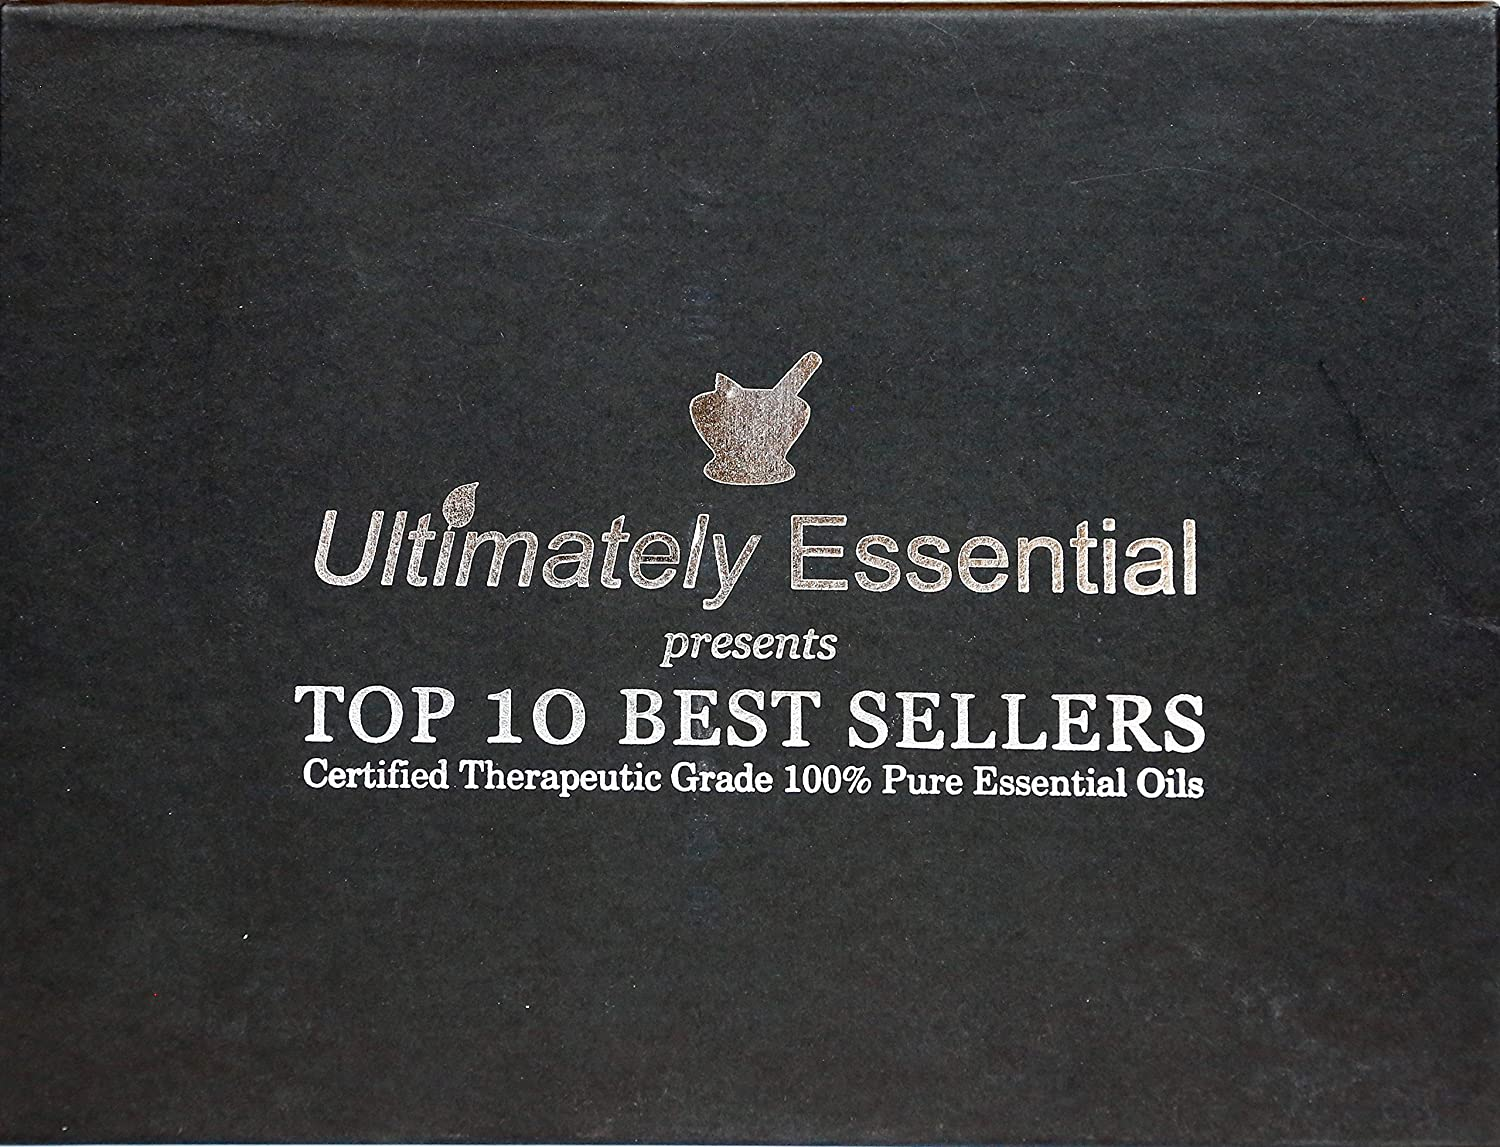 com ultimately essential oils top gift set ml  com ultimately essential oils top 10 gift set 10 10ml 2 empty to blend highest quality 100% pure therapeutic frankincense lavender peppermint